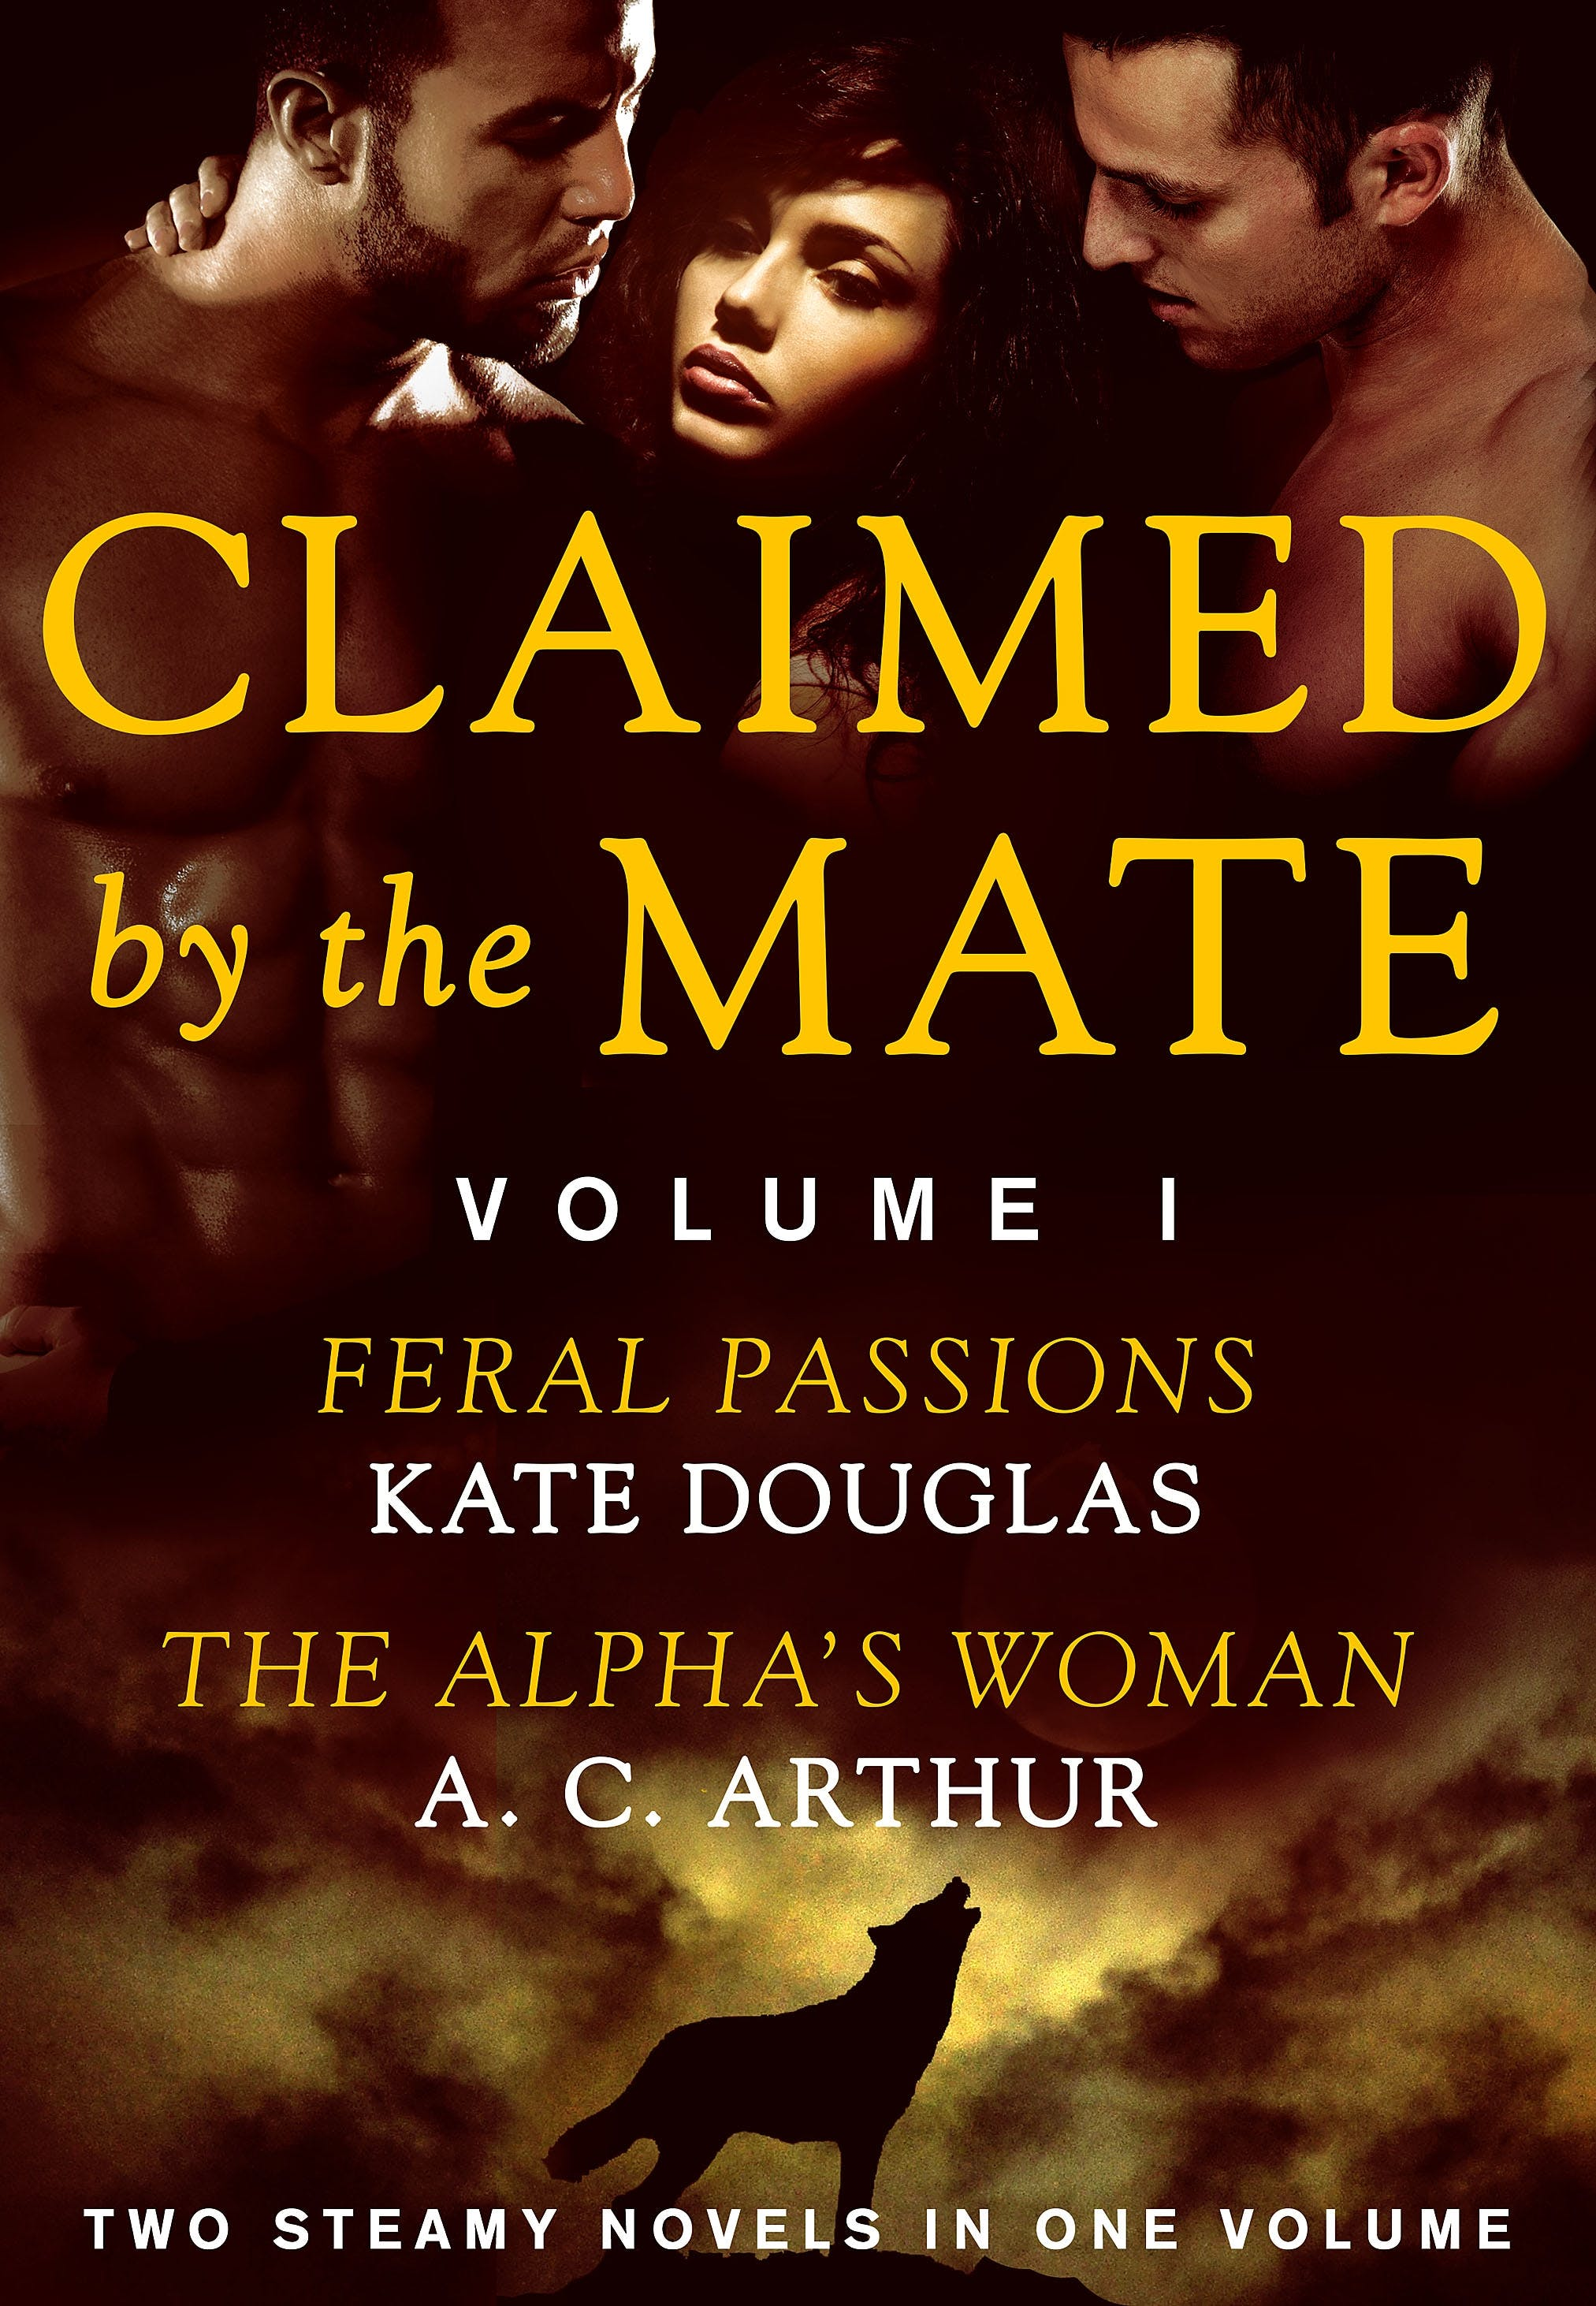 Image of Claimed by the Mate, Vol. 1